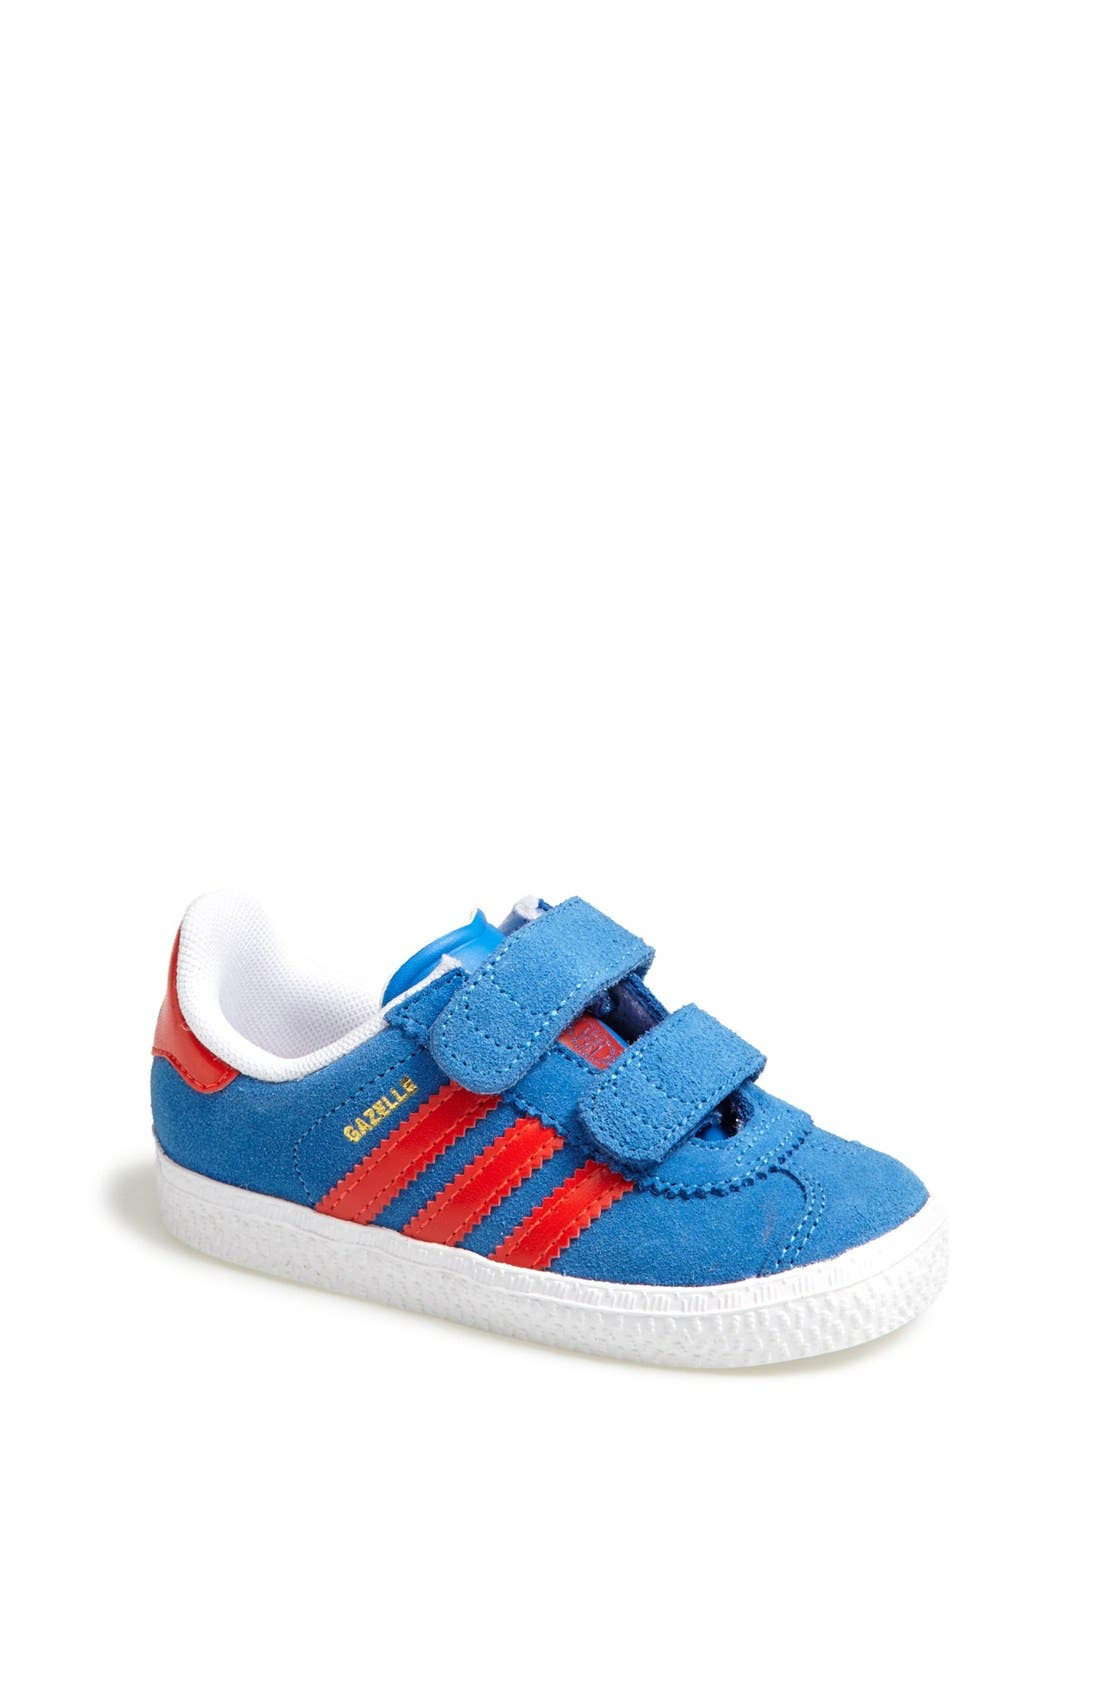 Main Image - adidas 'Gazelle 2' Sneaker (Baby, Walker & Toddler)